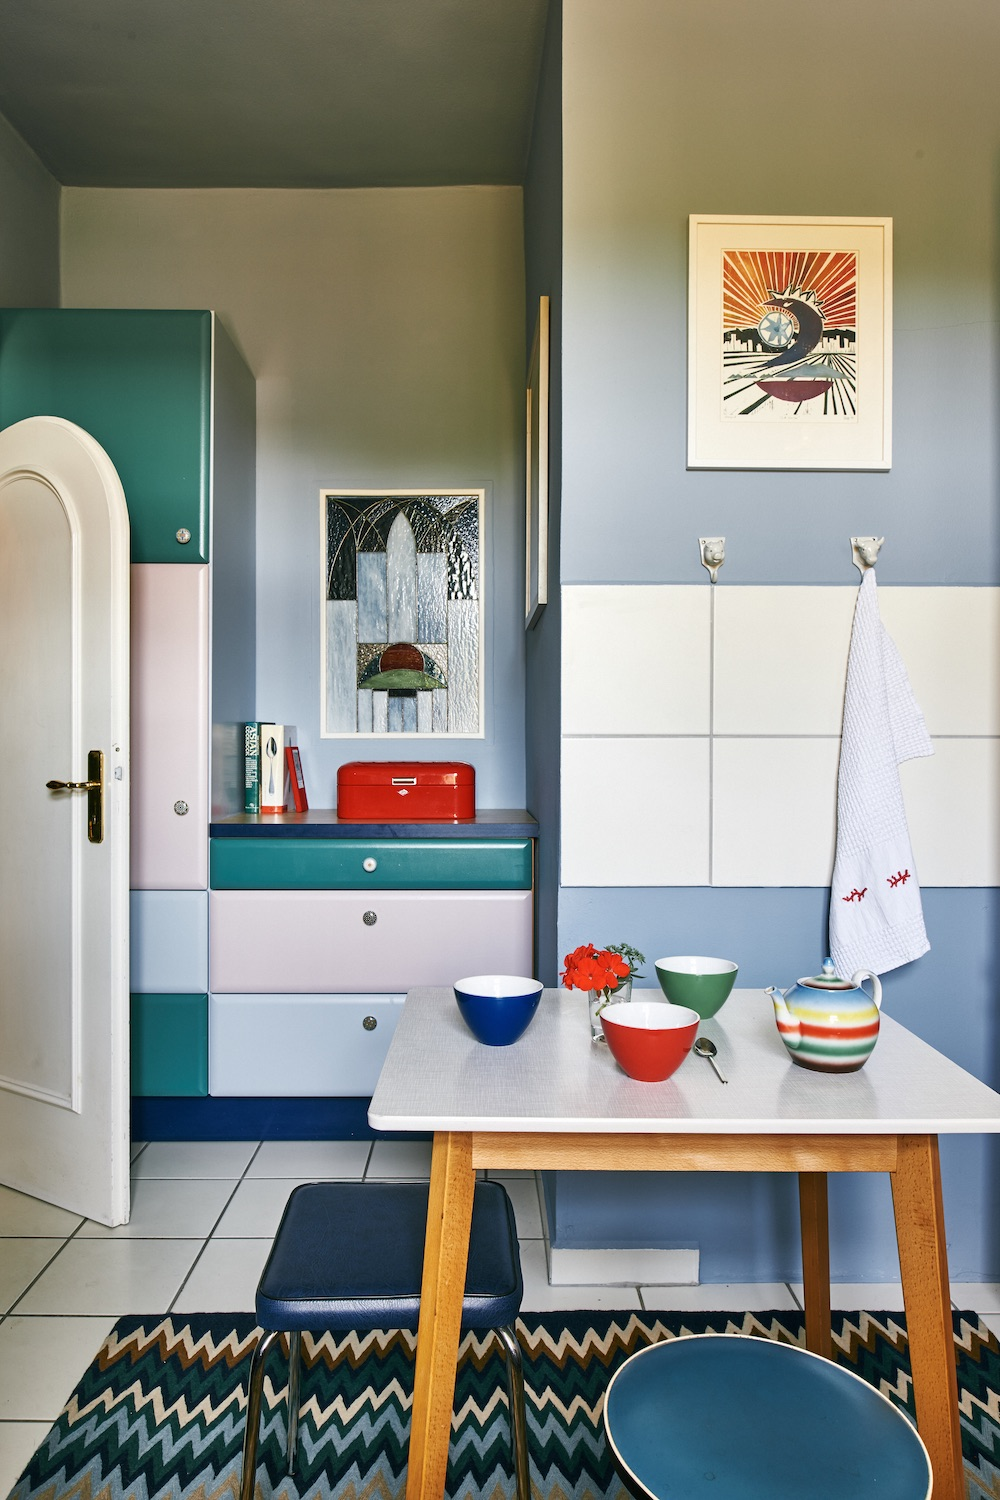 midcentury modern kitchen with color blocked cabinets